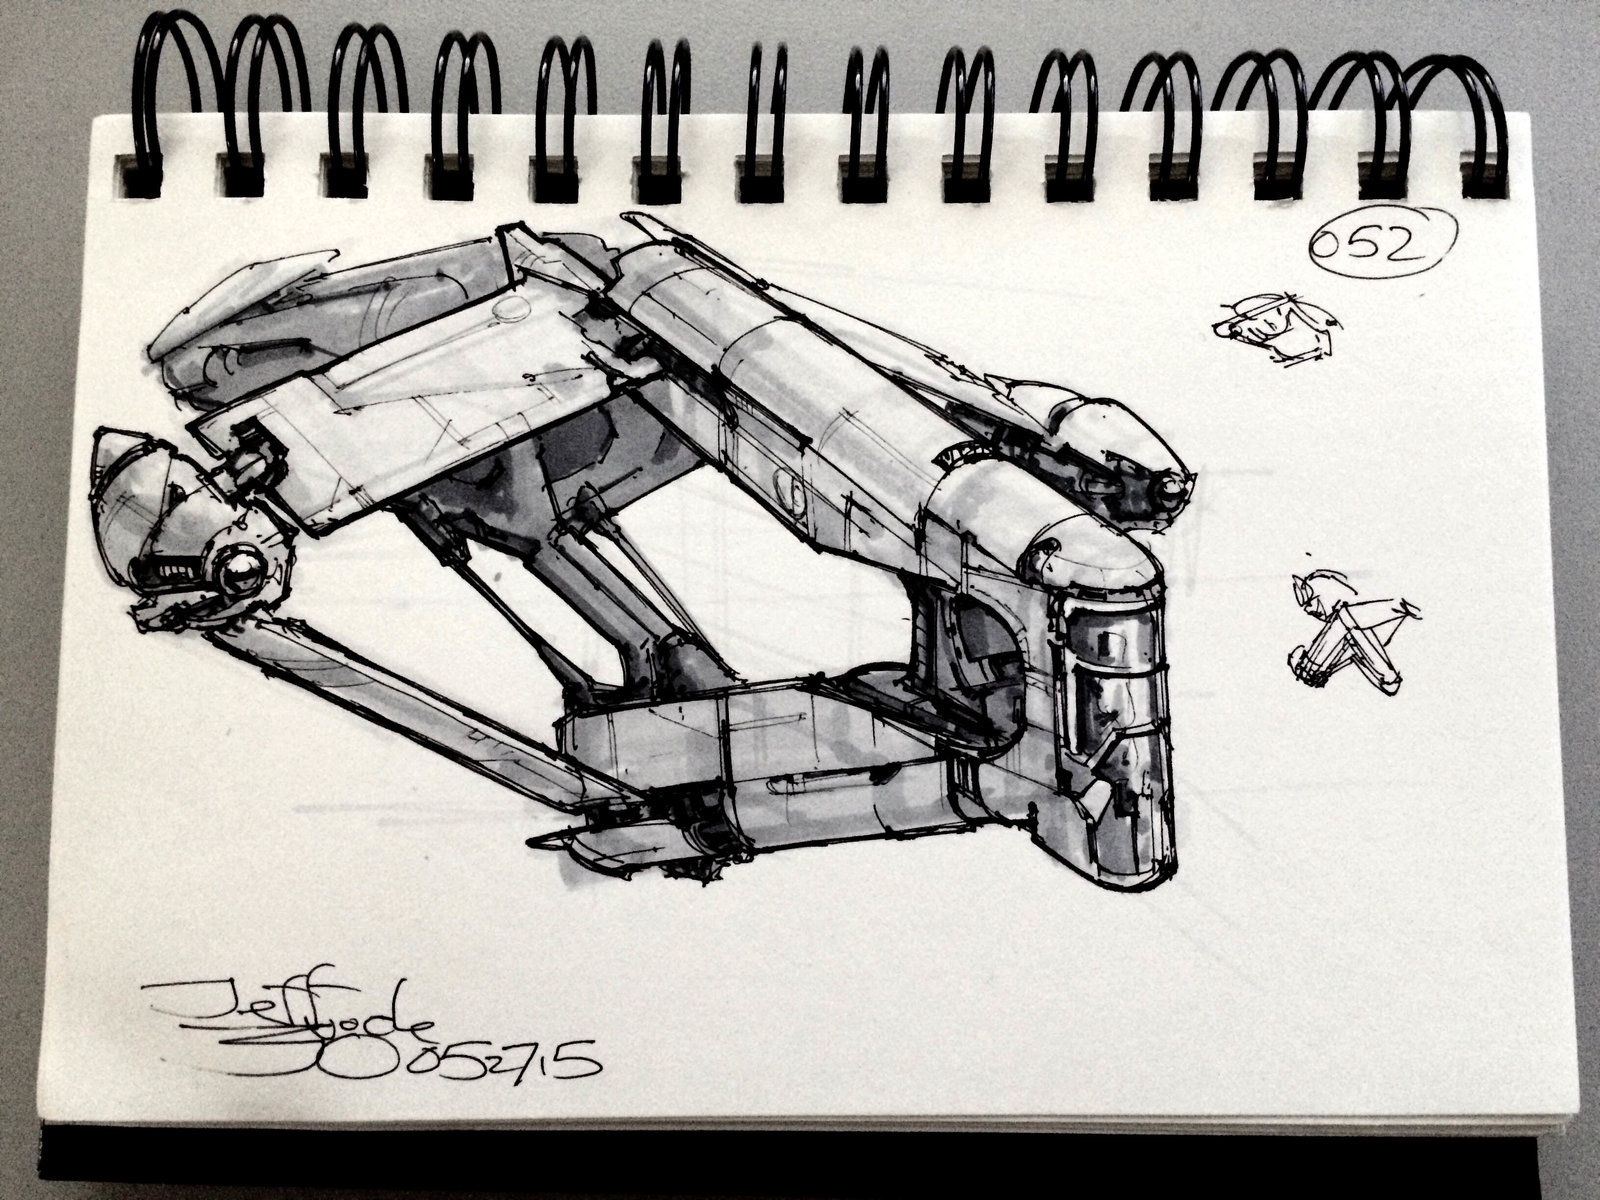 SpaceshipADay 052